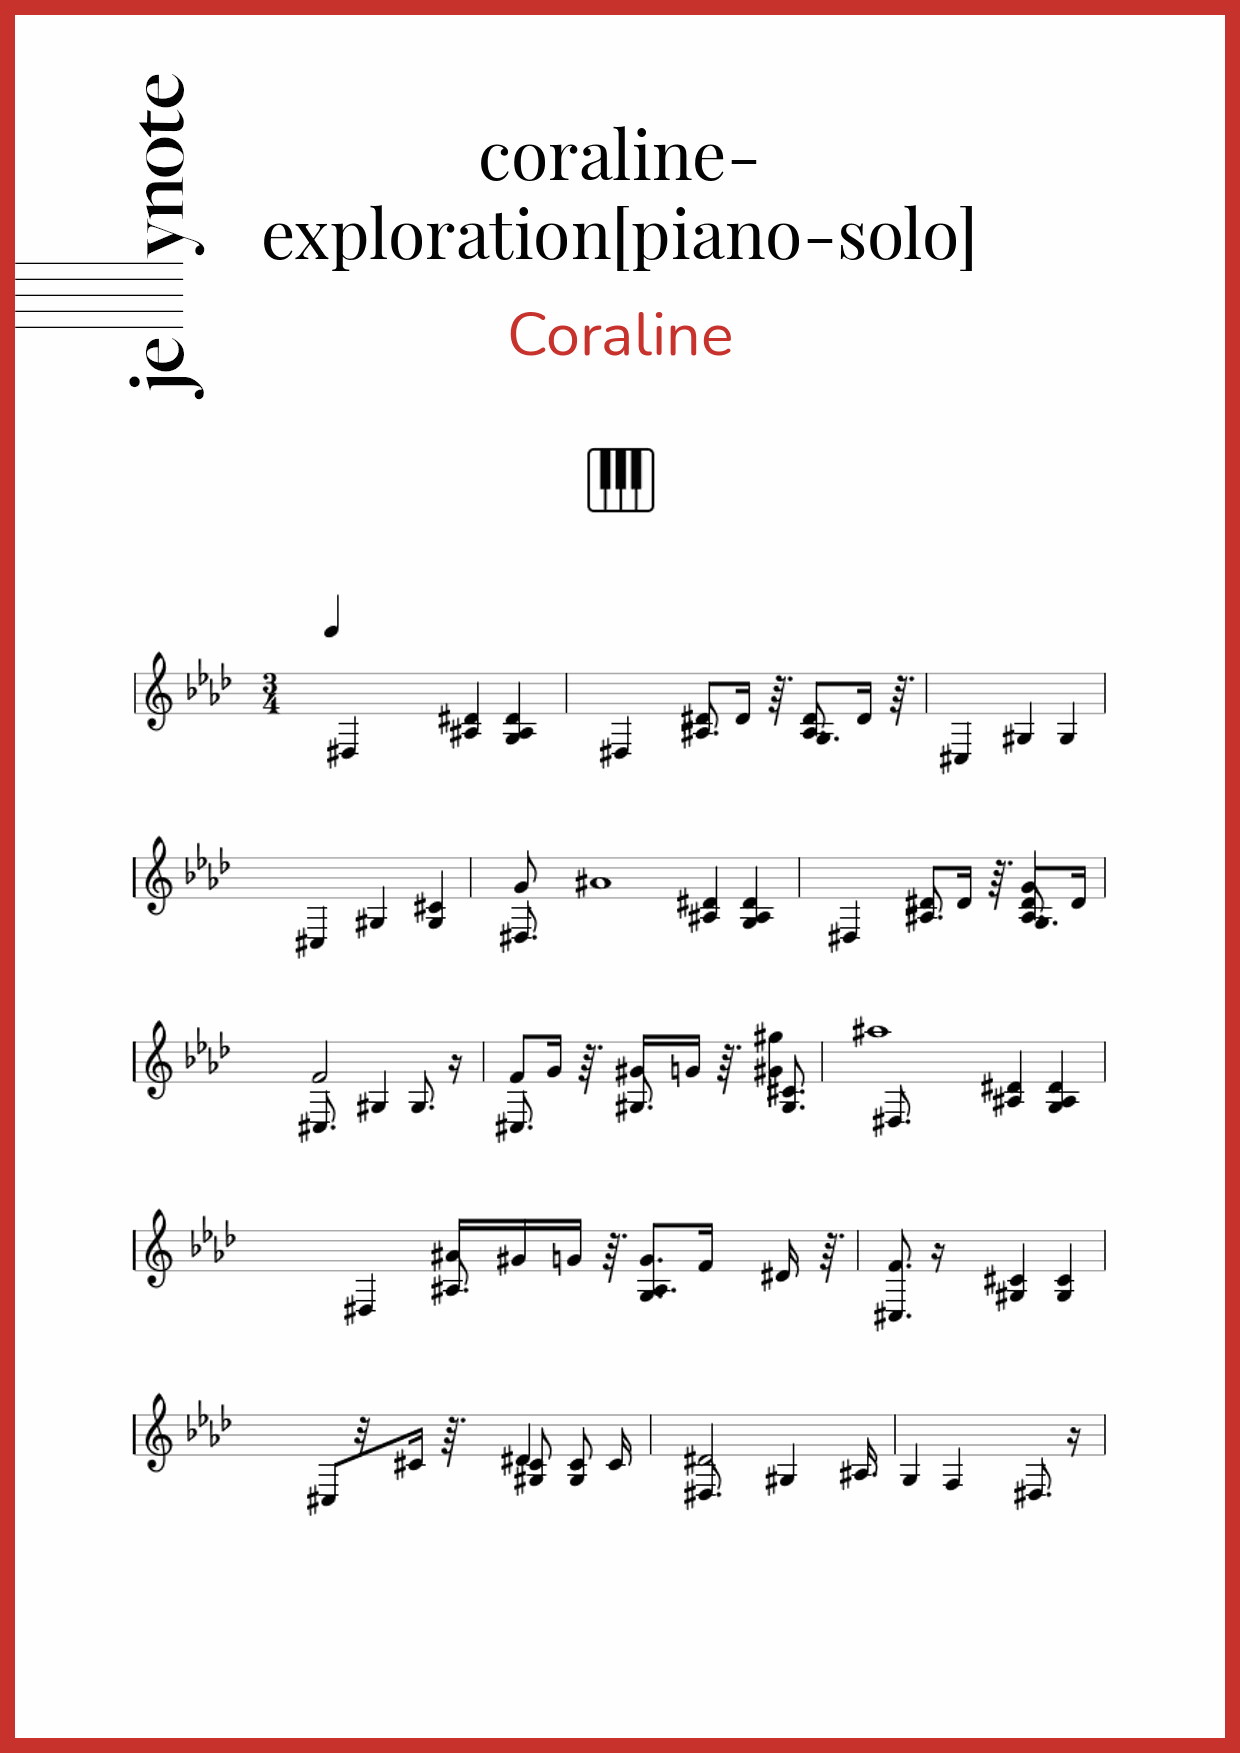 Coraline Coraline Exploration Piano Solo Piano Sheet Music Jellynote